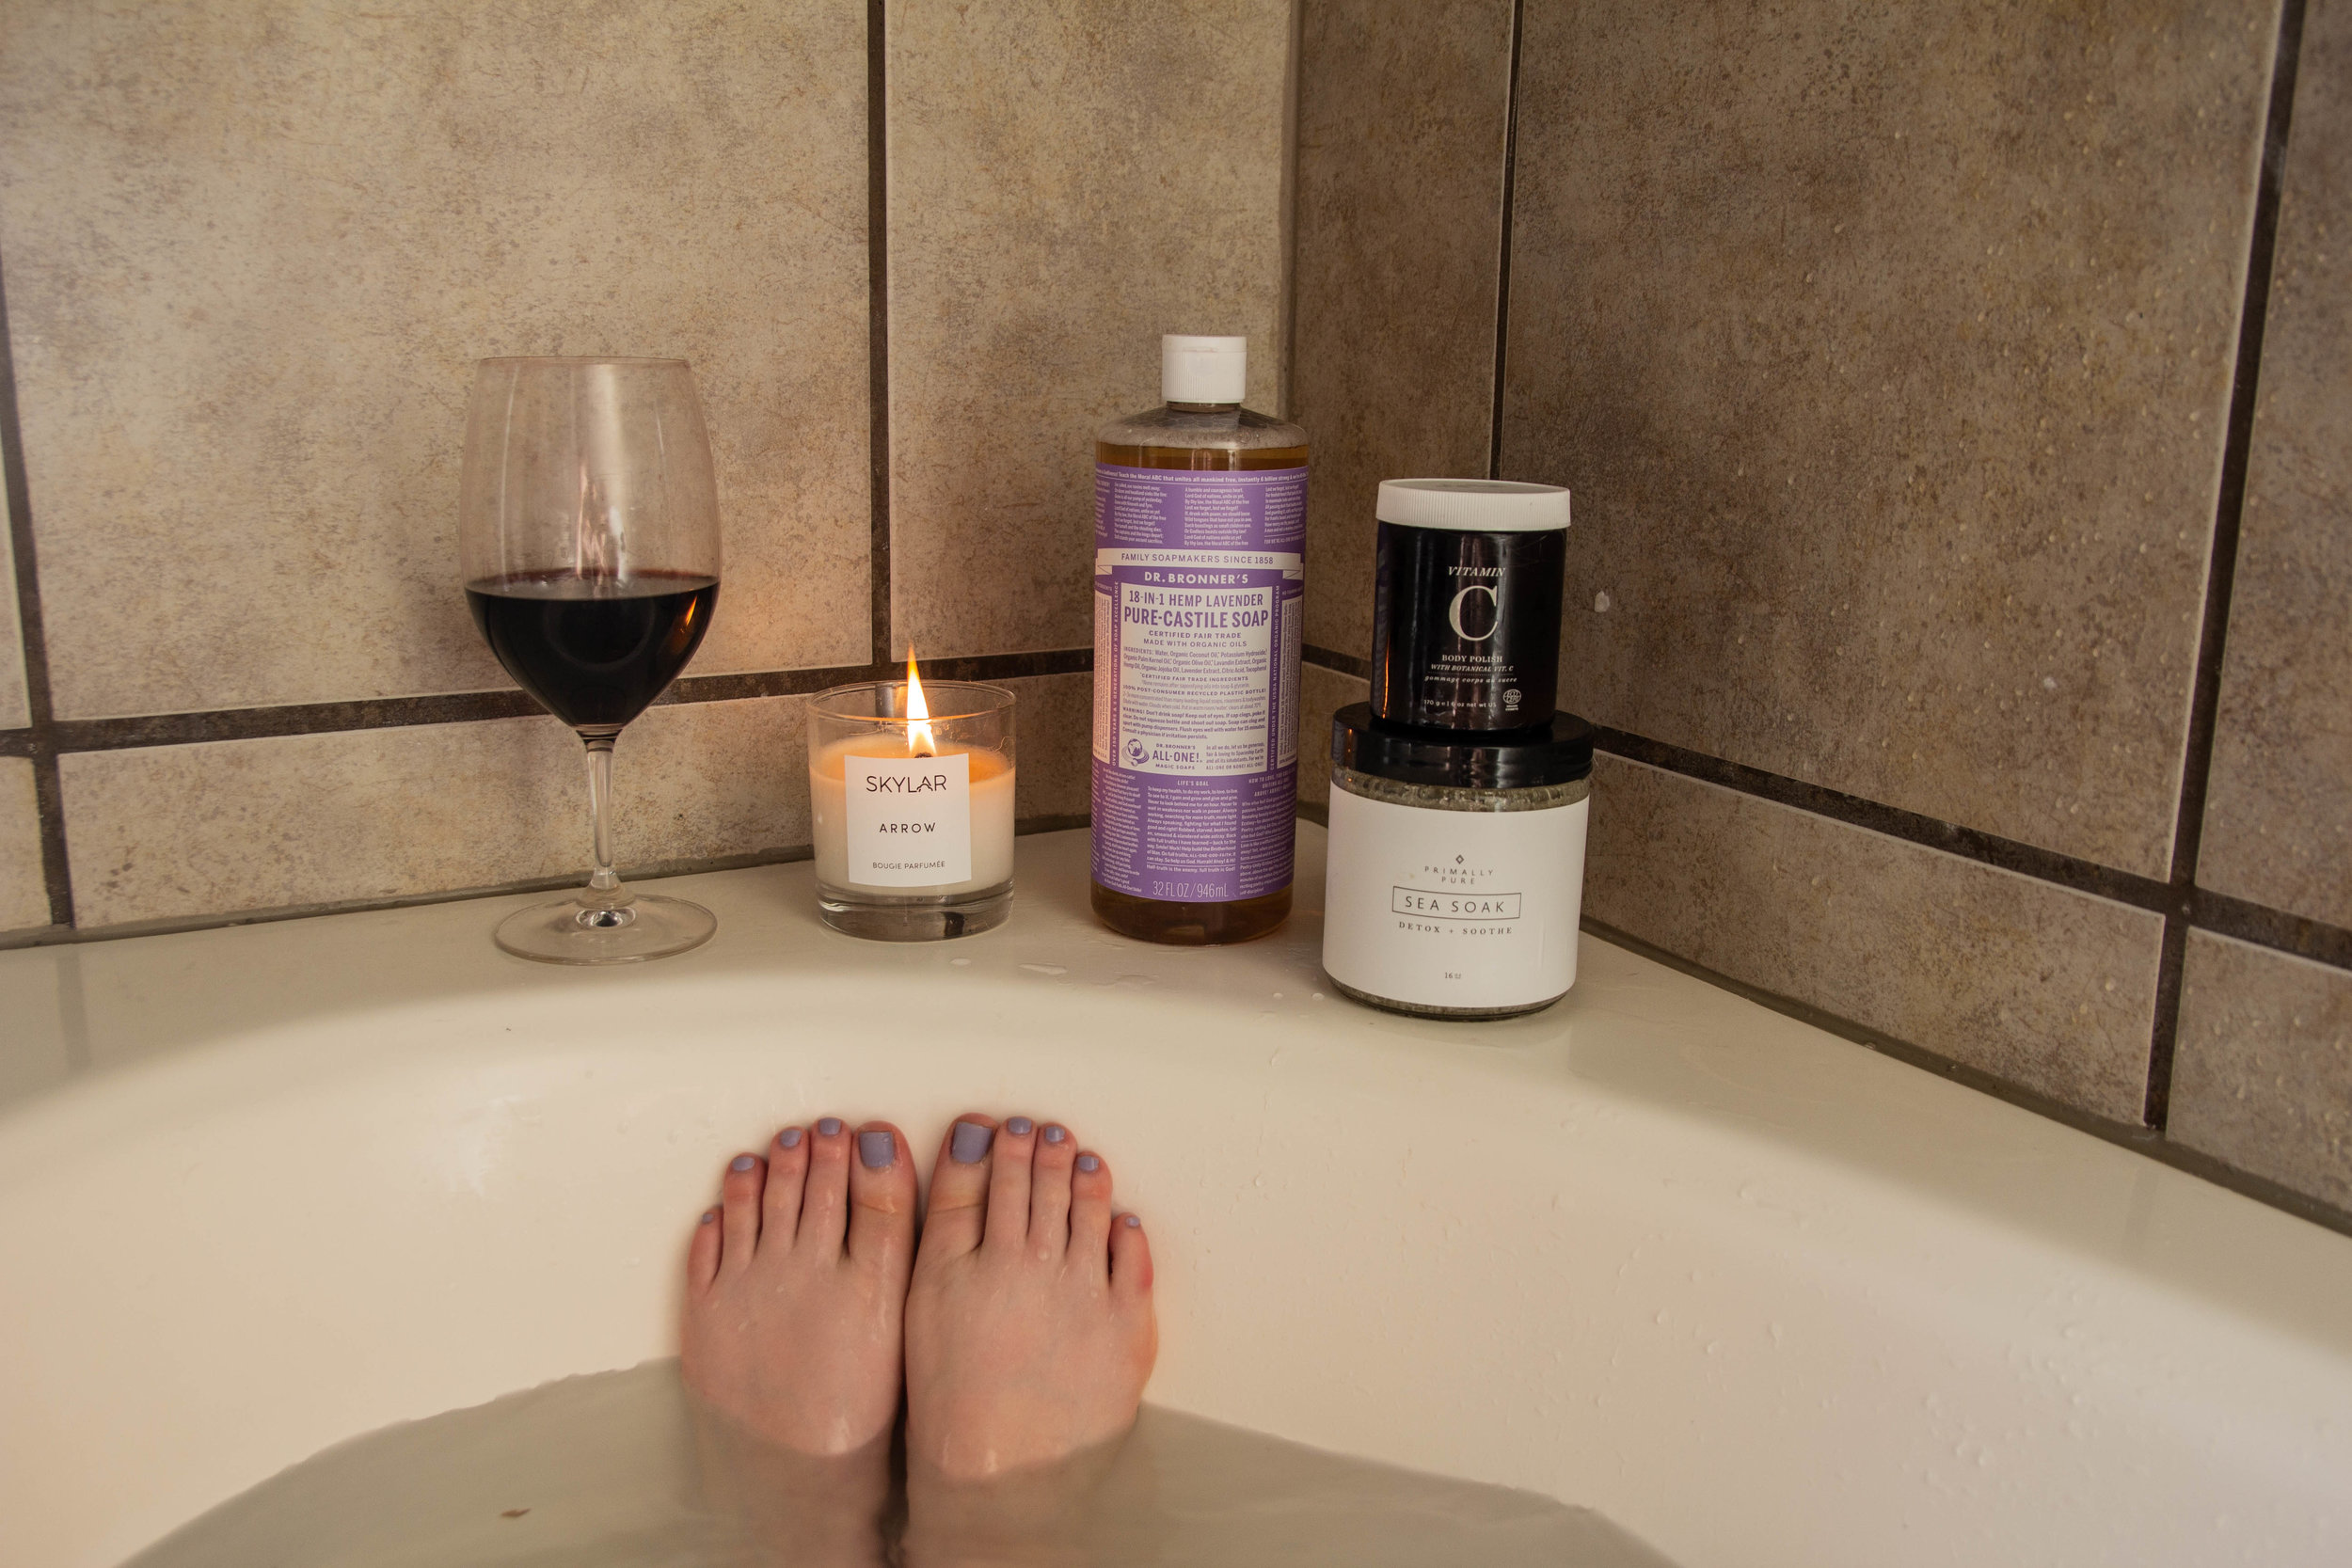 cruelty-free and nontoxic body wash, dr. bronner's pure castile soap lavender, dr. bronner's review, skylar body arrow candle, one love organics body polish, primally pure sea soak detox, tempranillo, riedel, bath time